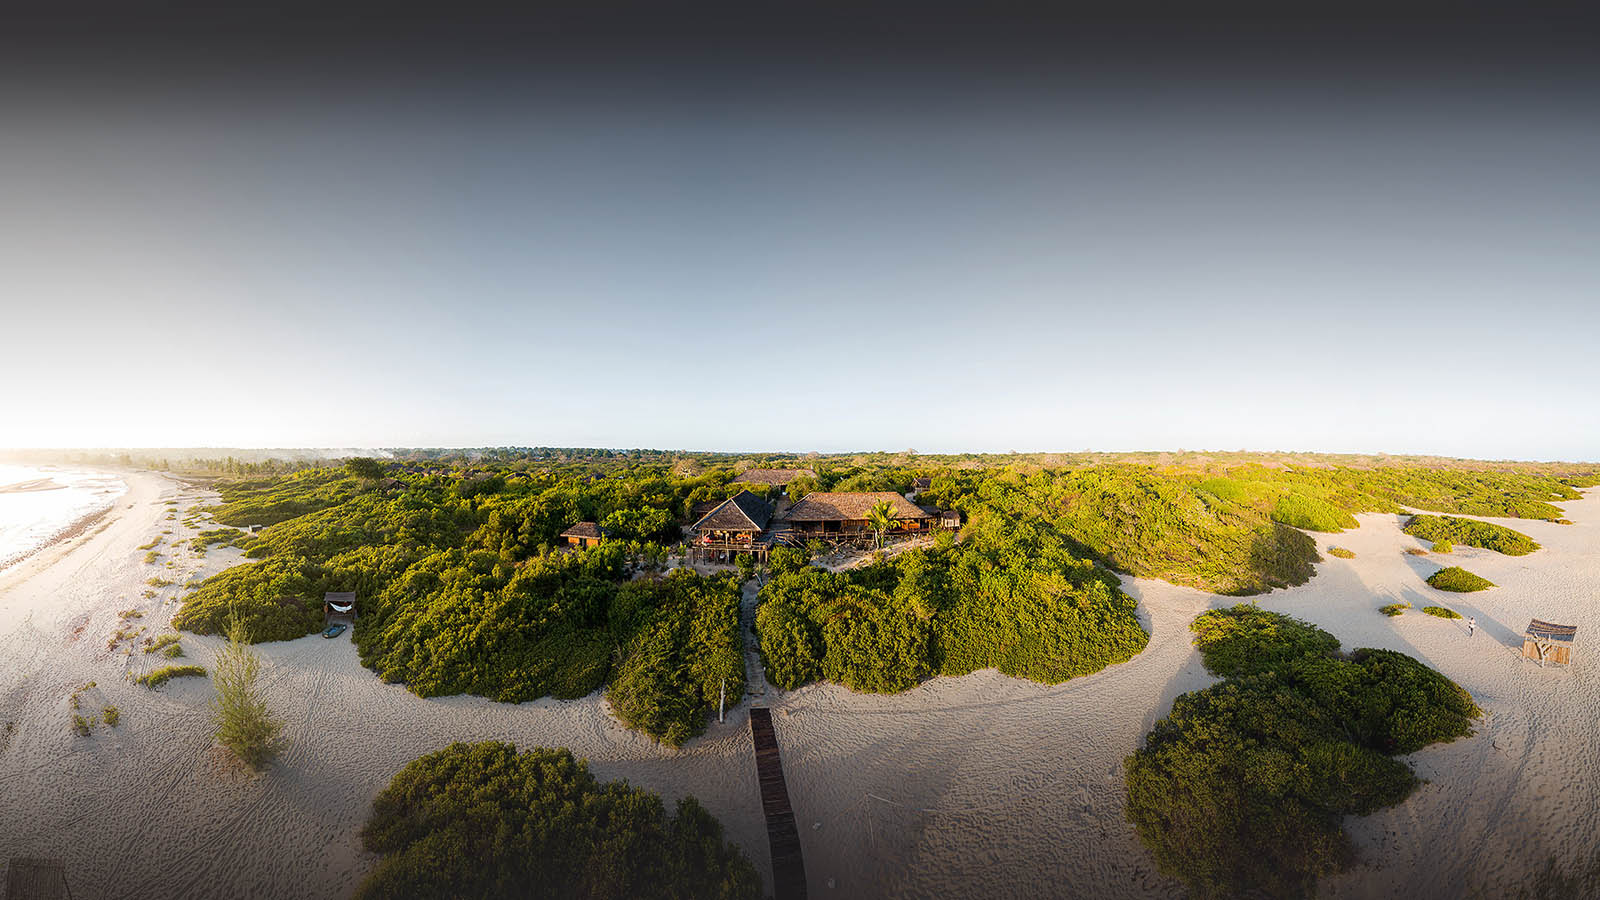 nuarro lodge nampula-province-mozambique-lodges-zambia-in-style-rustic-remote-getaway-lodge